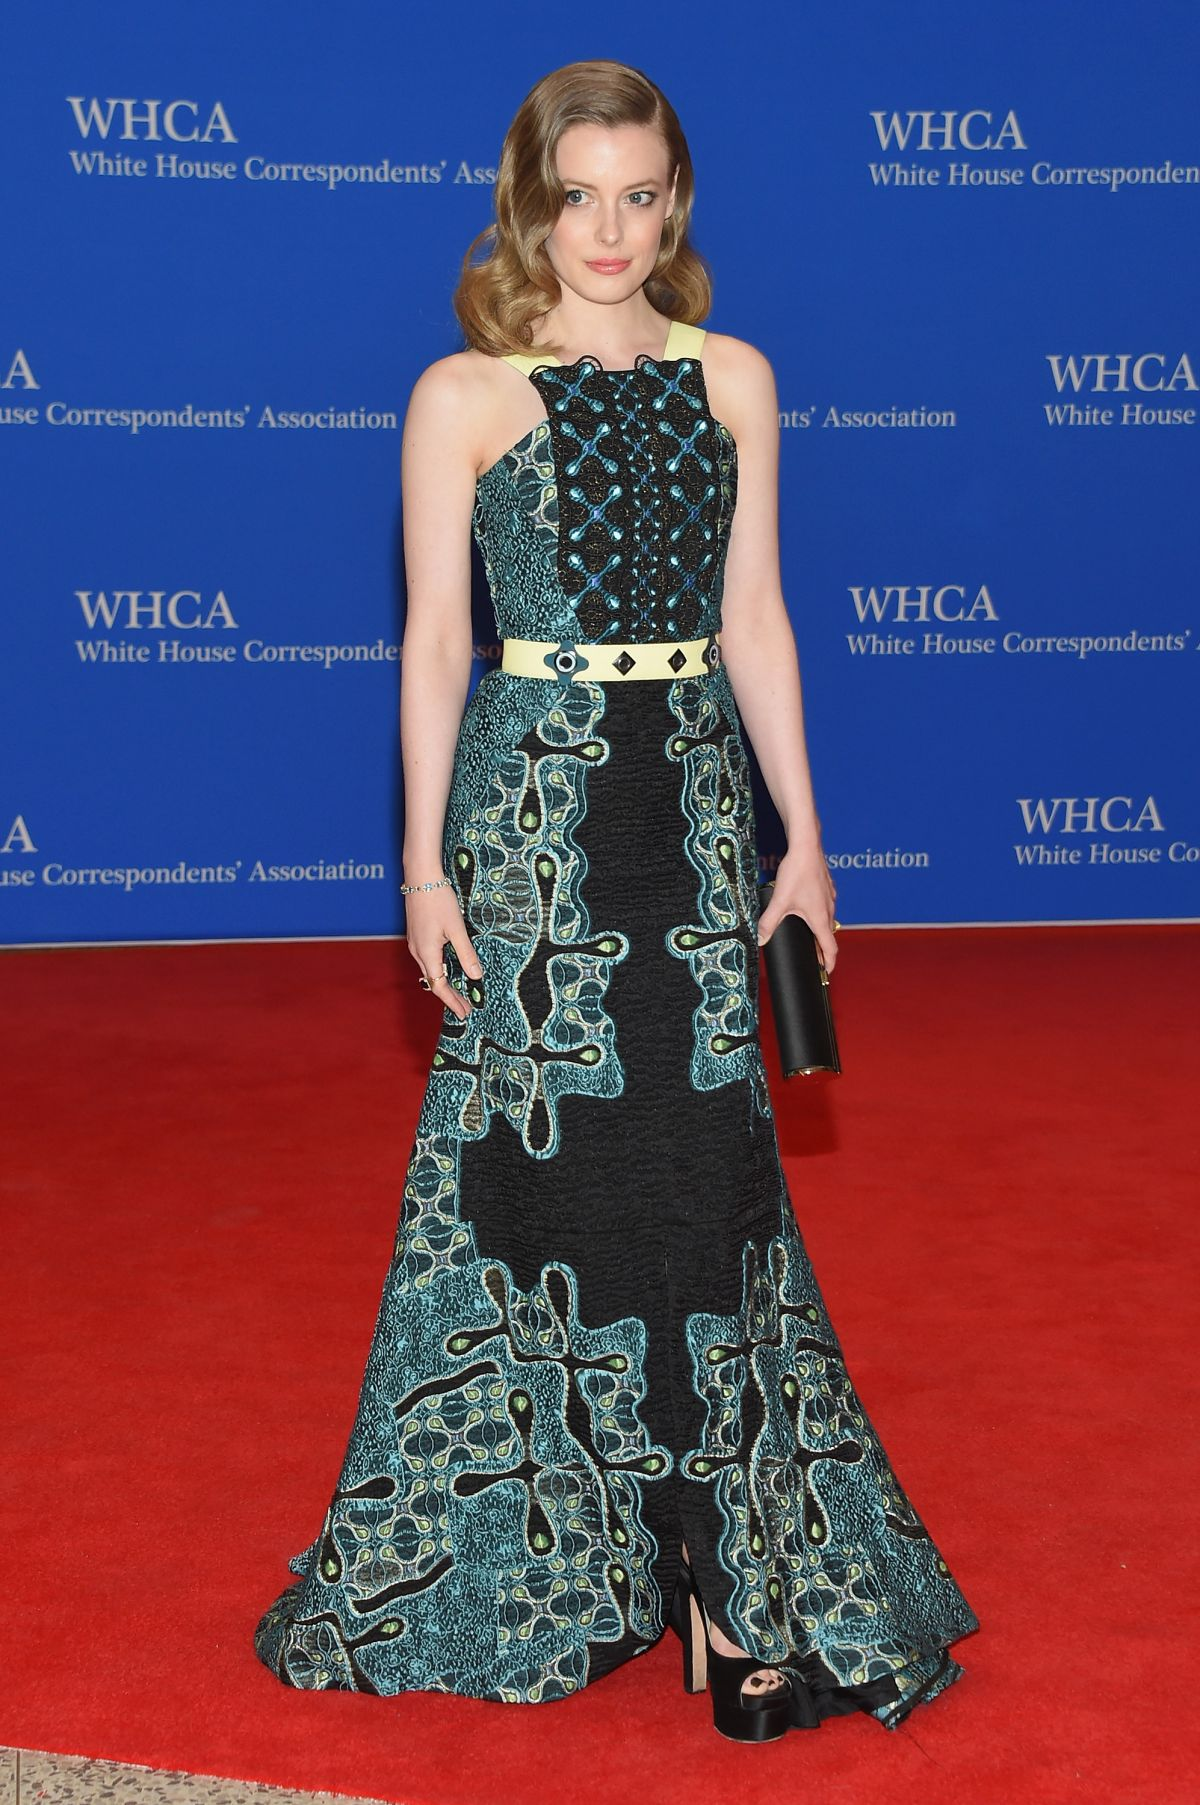 GILLIAN JACOBS at White House Correspondents Association Dinner in Washington